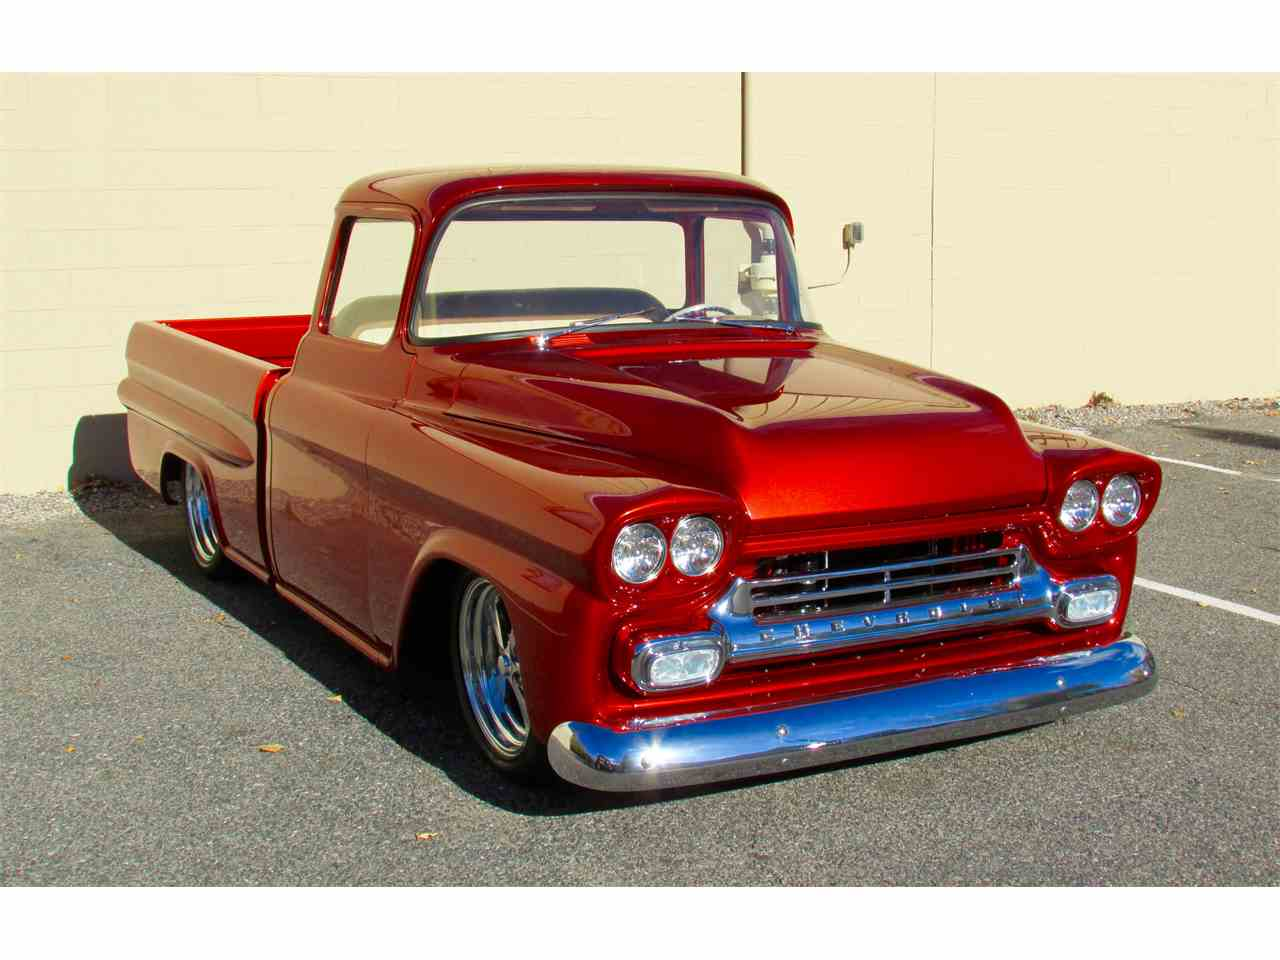 Large Picture of '59 Chevrolet Fleetside Custom Pickup Truck  located in Massachusetts Offered by a Private Seller - JPTV